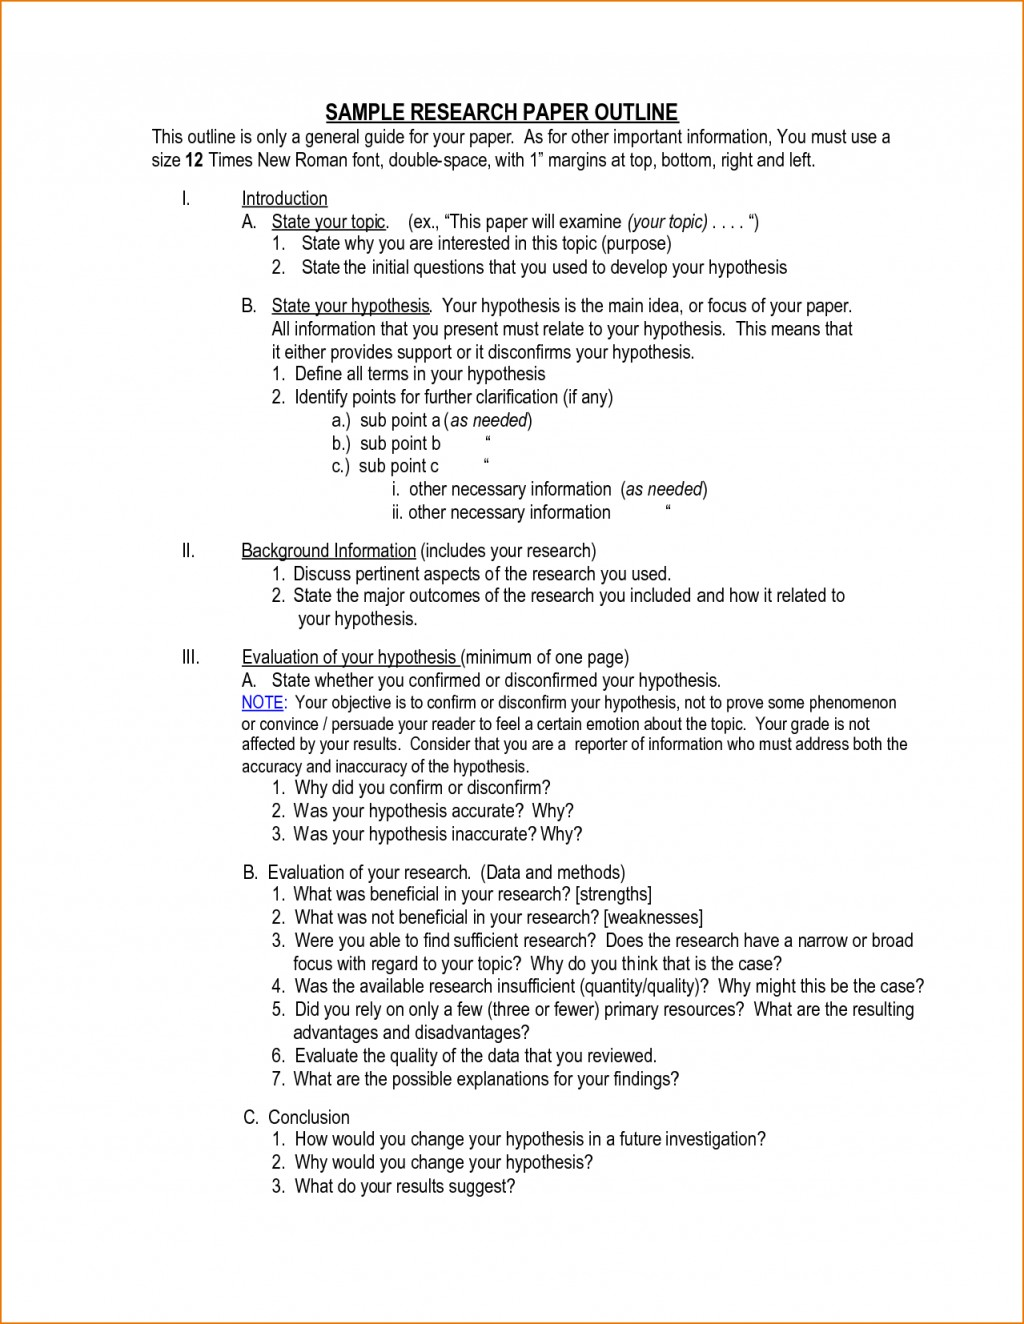 017 Hypothesis In Research Paper Outline Template For Fantastic Null And Alternative Testing Project Large